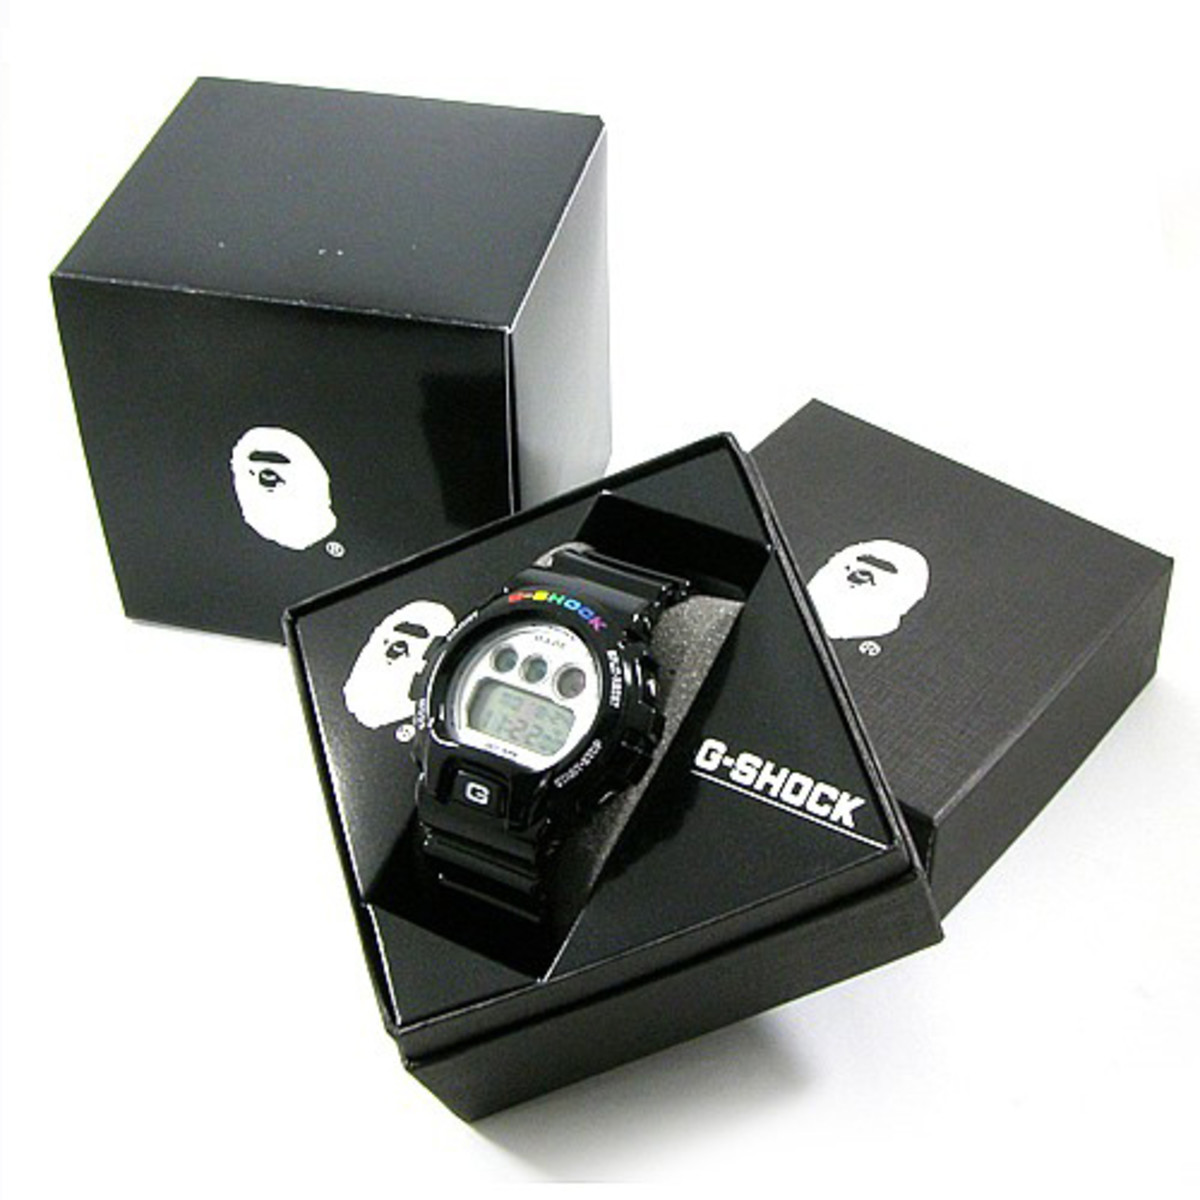 bape-casio-gshock-dw6900-watch-05